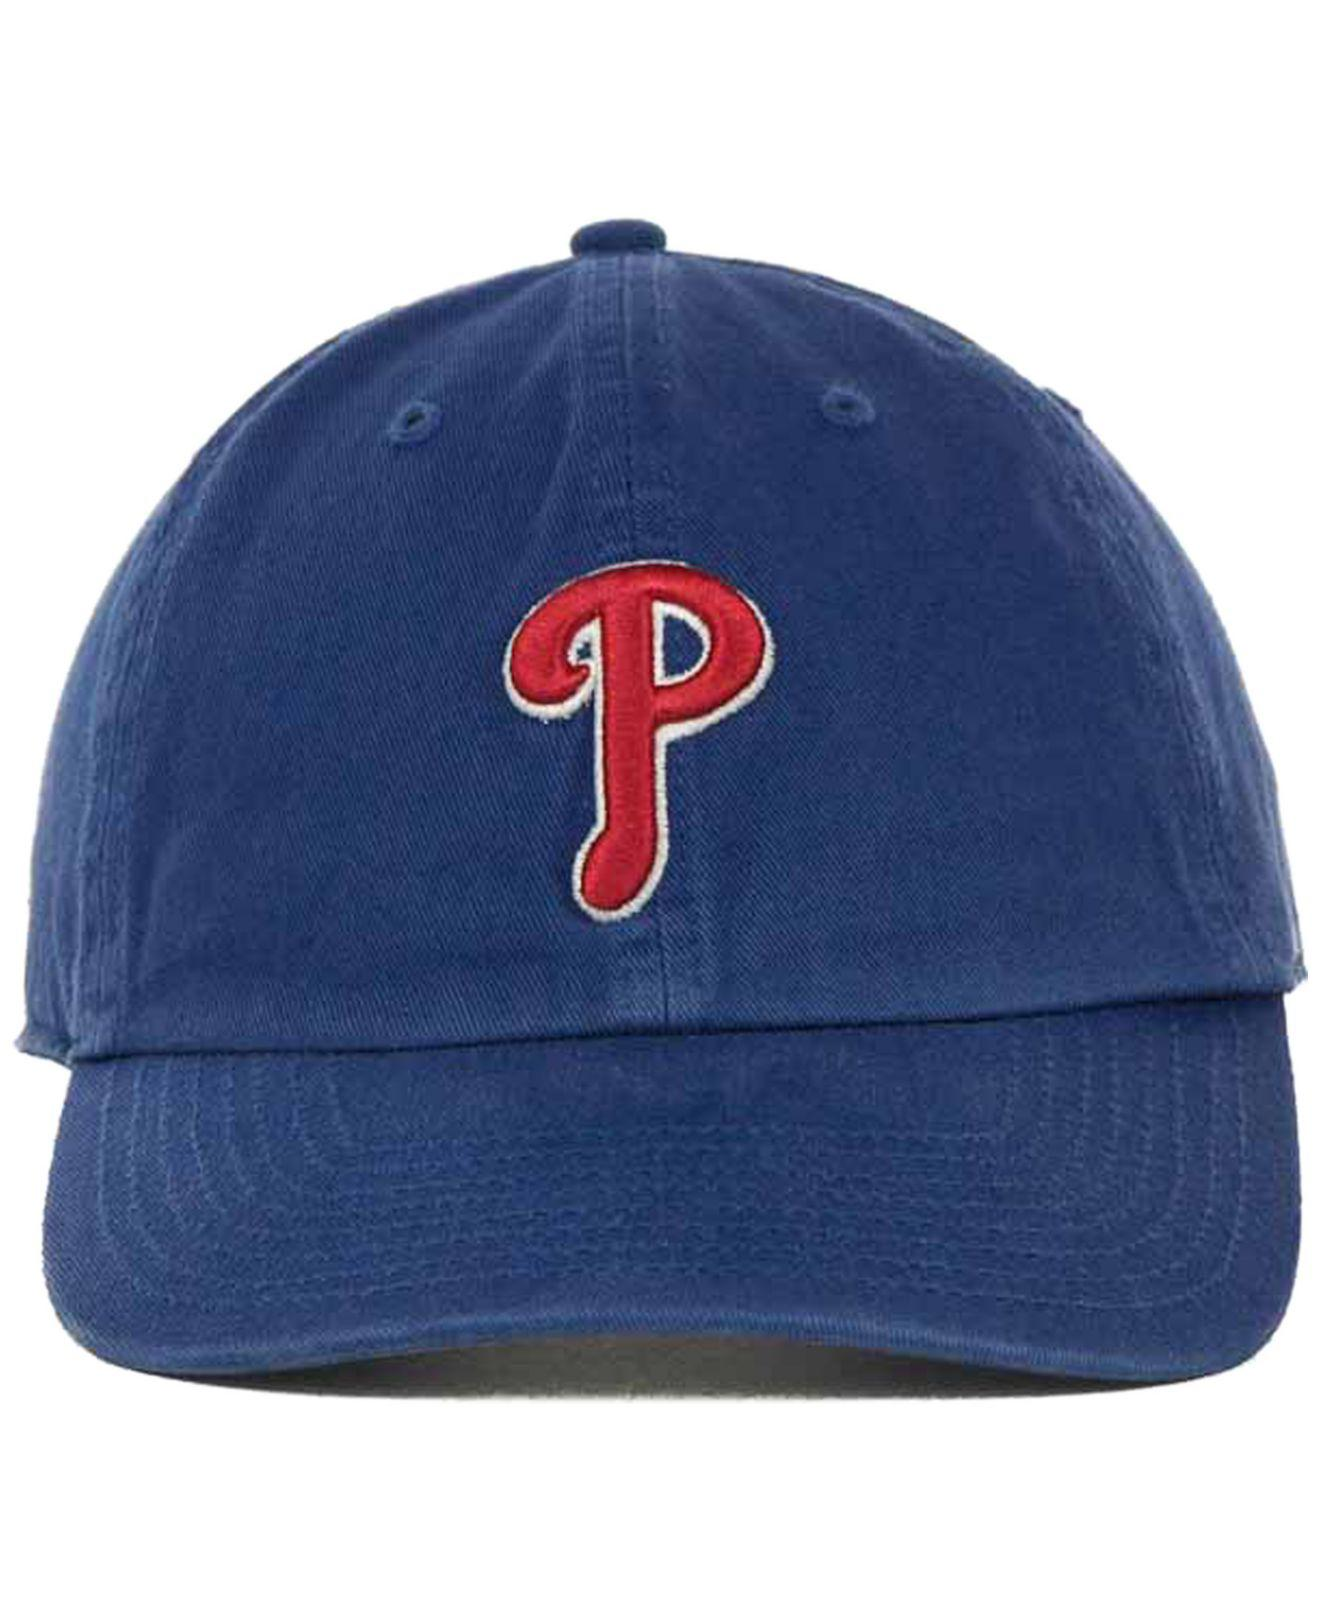 7c3ac8dbb0d Lyst - 47 Brand Philadelphia Phillies Clean Up Hat in Natural for Men